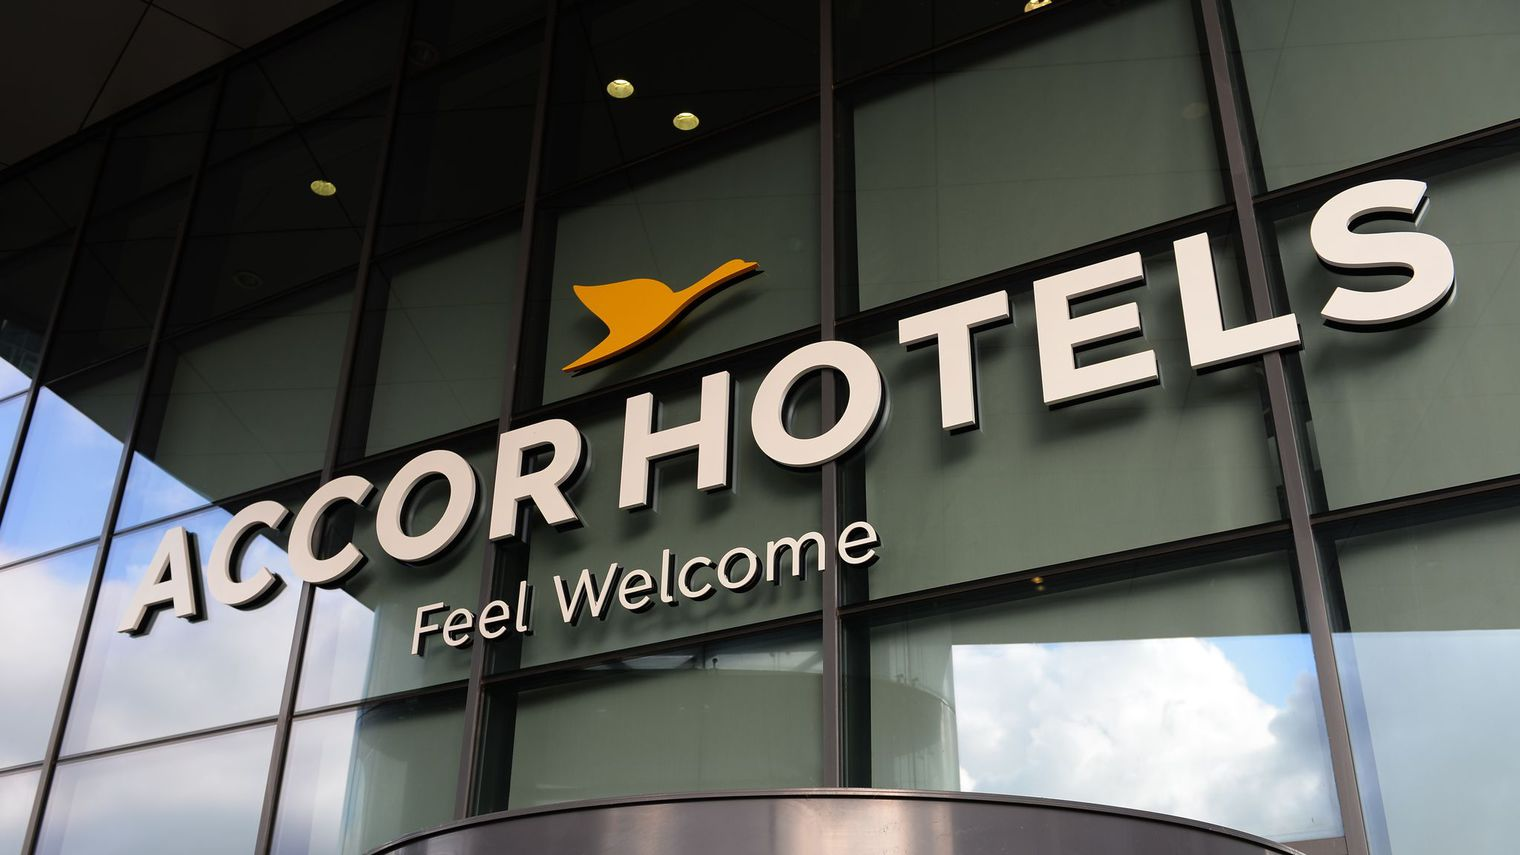 Accor Hotels restructures down under